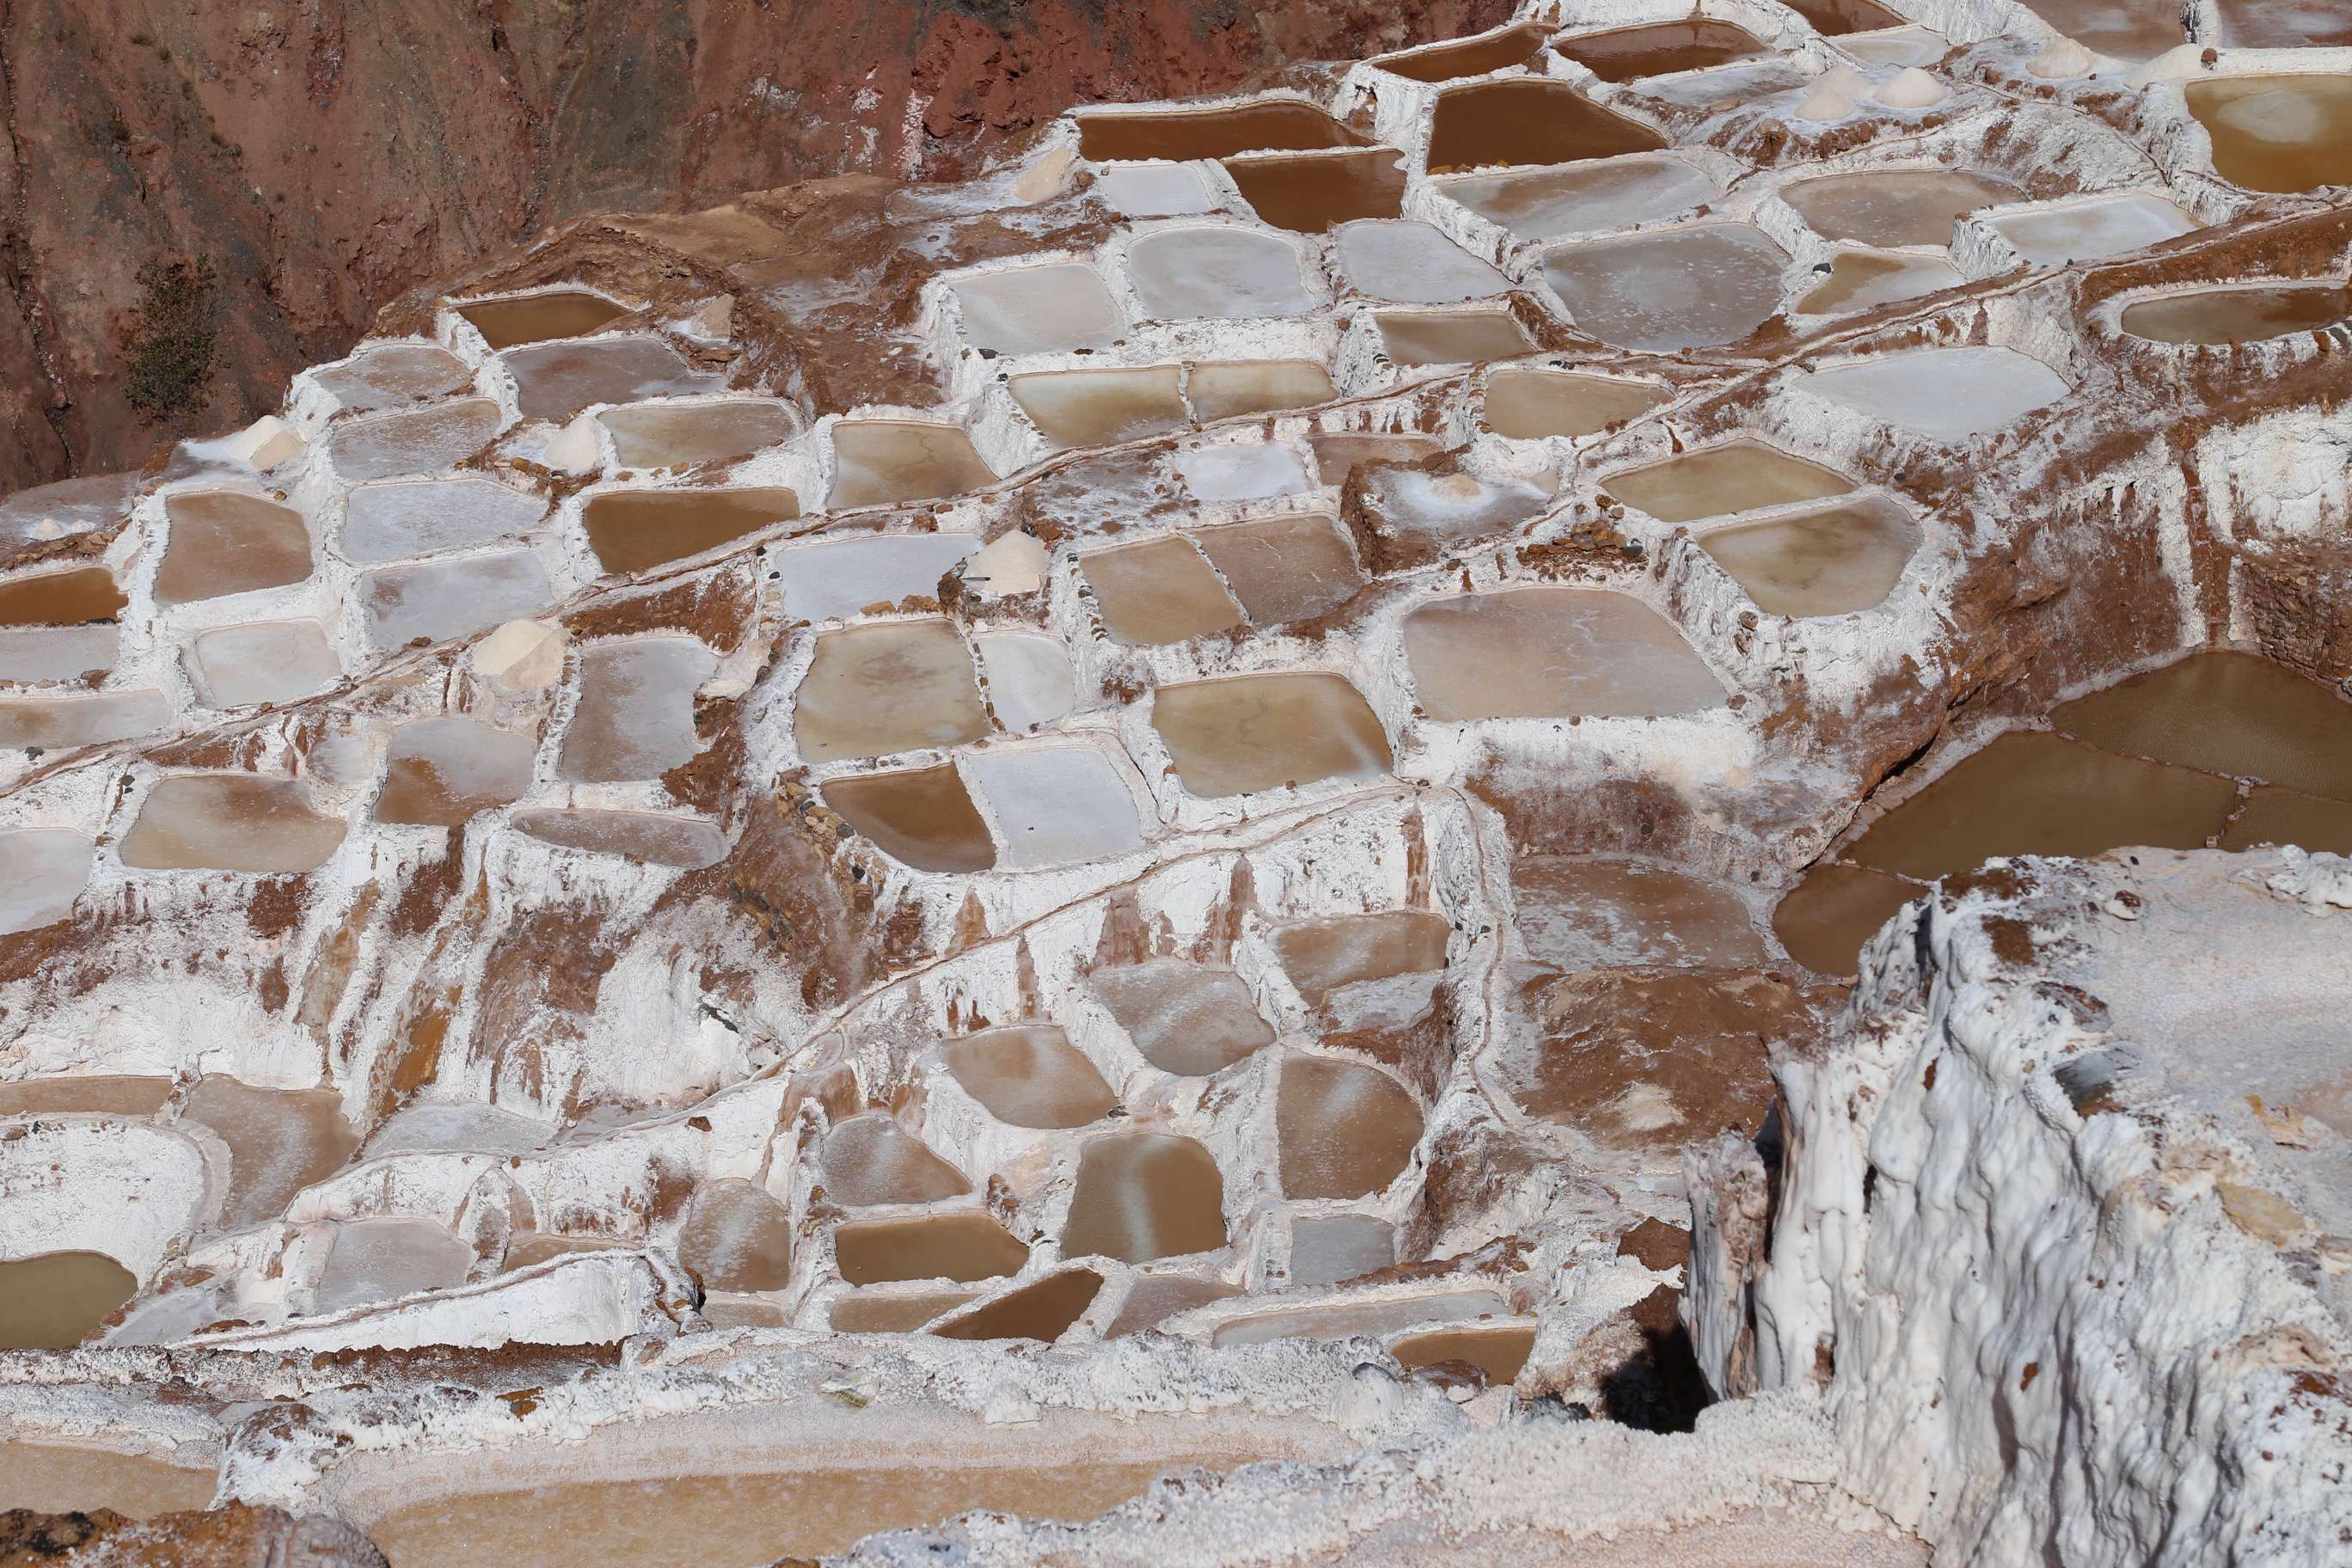 For well over a thousand years, these salt ponds at Maras, Peru have been producing high quality salt.